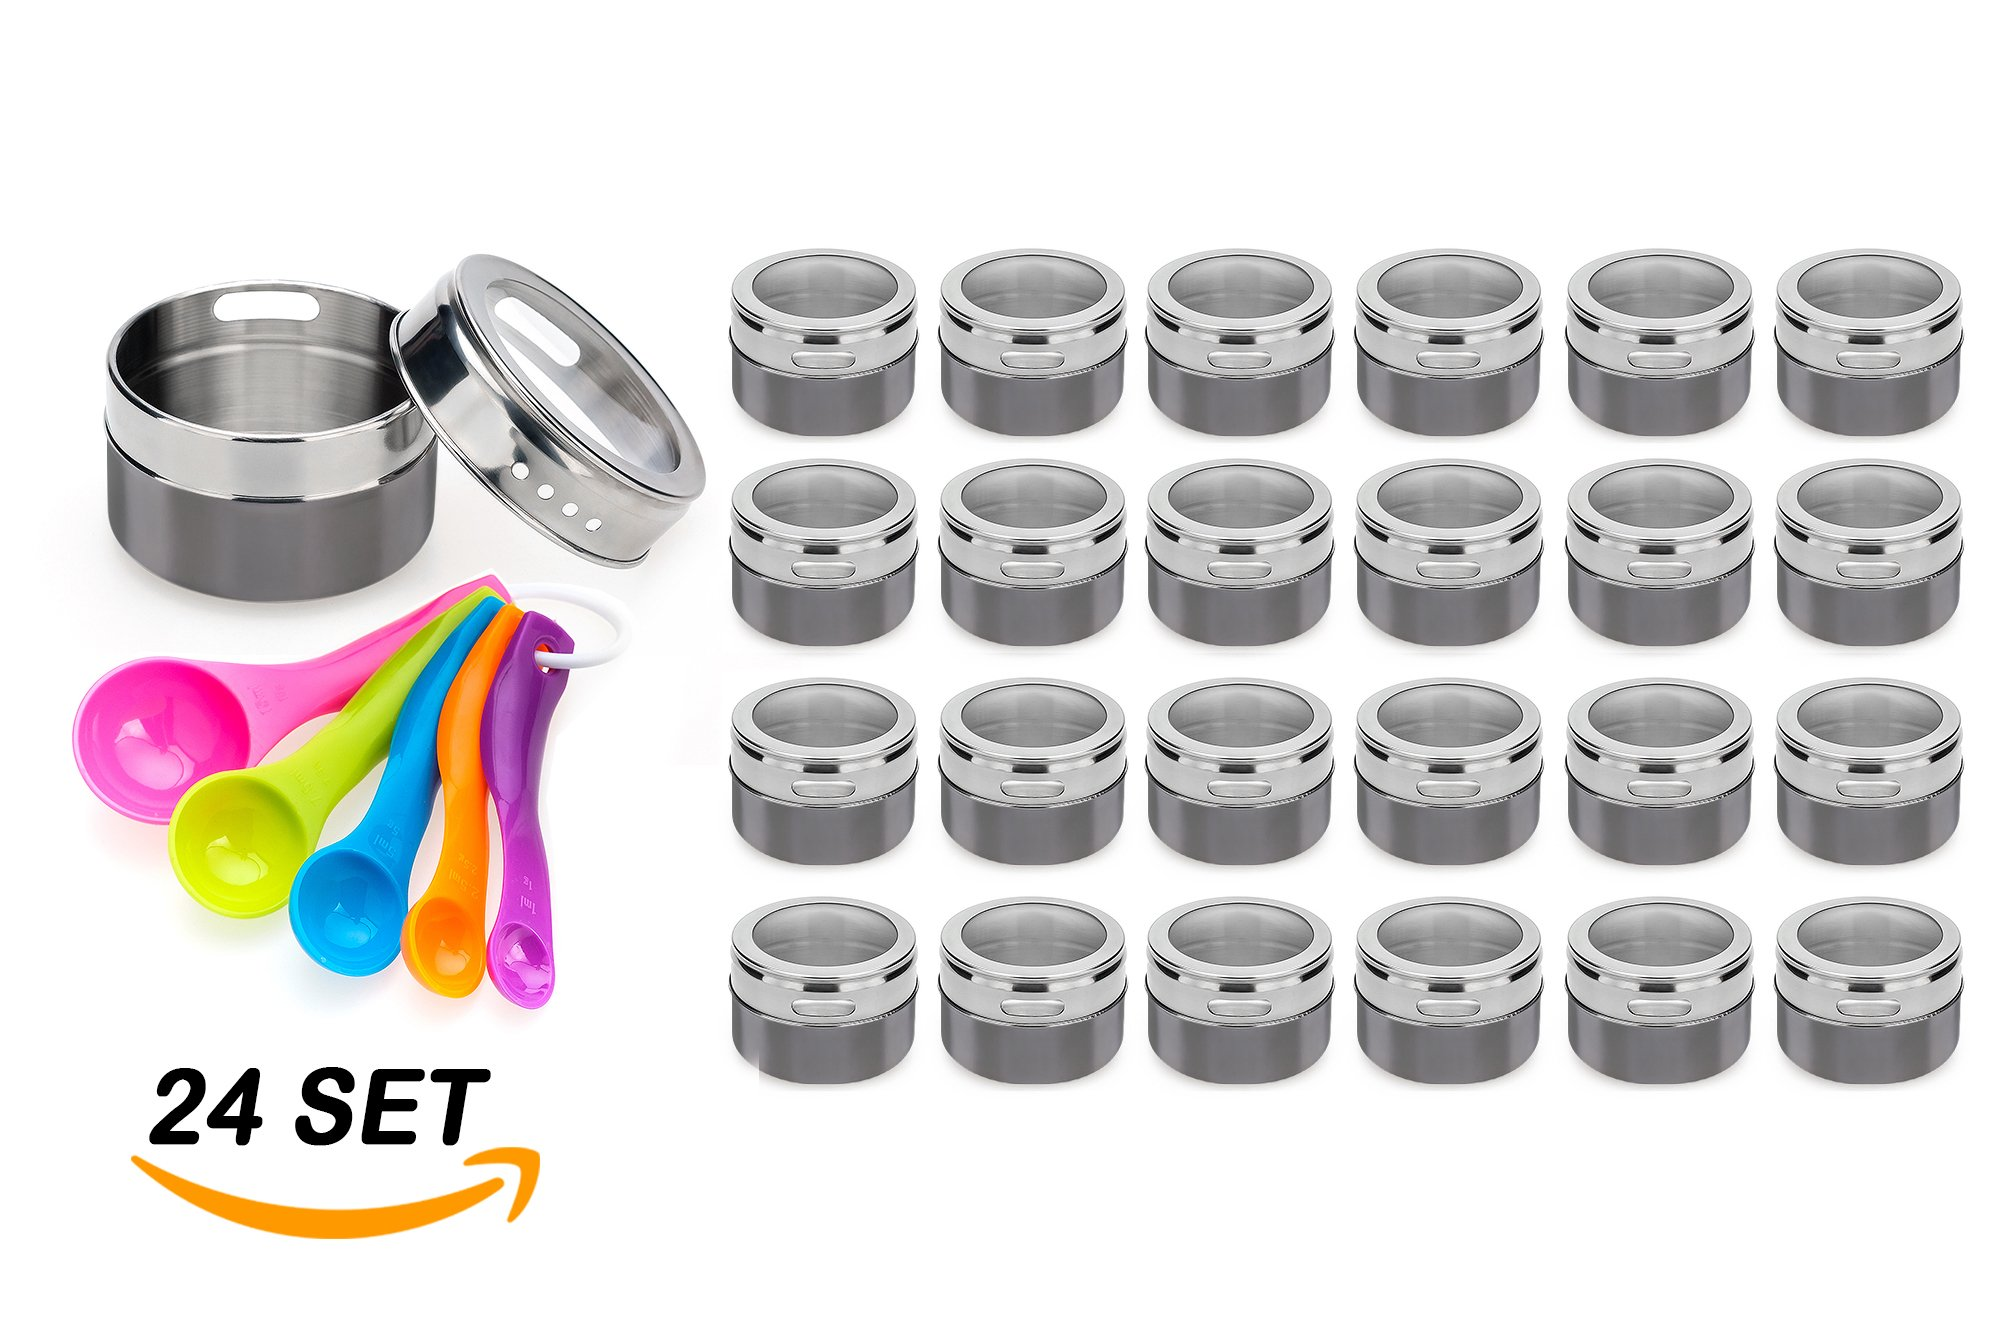 Stainless Steel Magnetic Spice Jars – Bonus Measuring Spoon Set – Airtight Kitchen Storage Containers – Stack on Fridge to Save Counter & Cupboard Space – 36pc Organizers in Gray